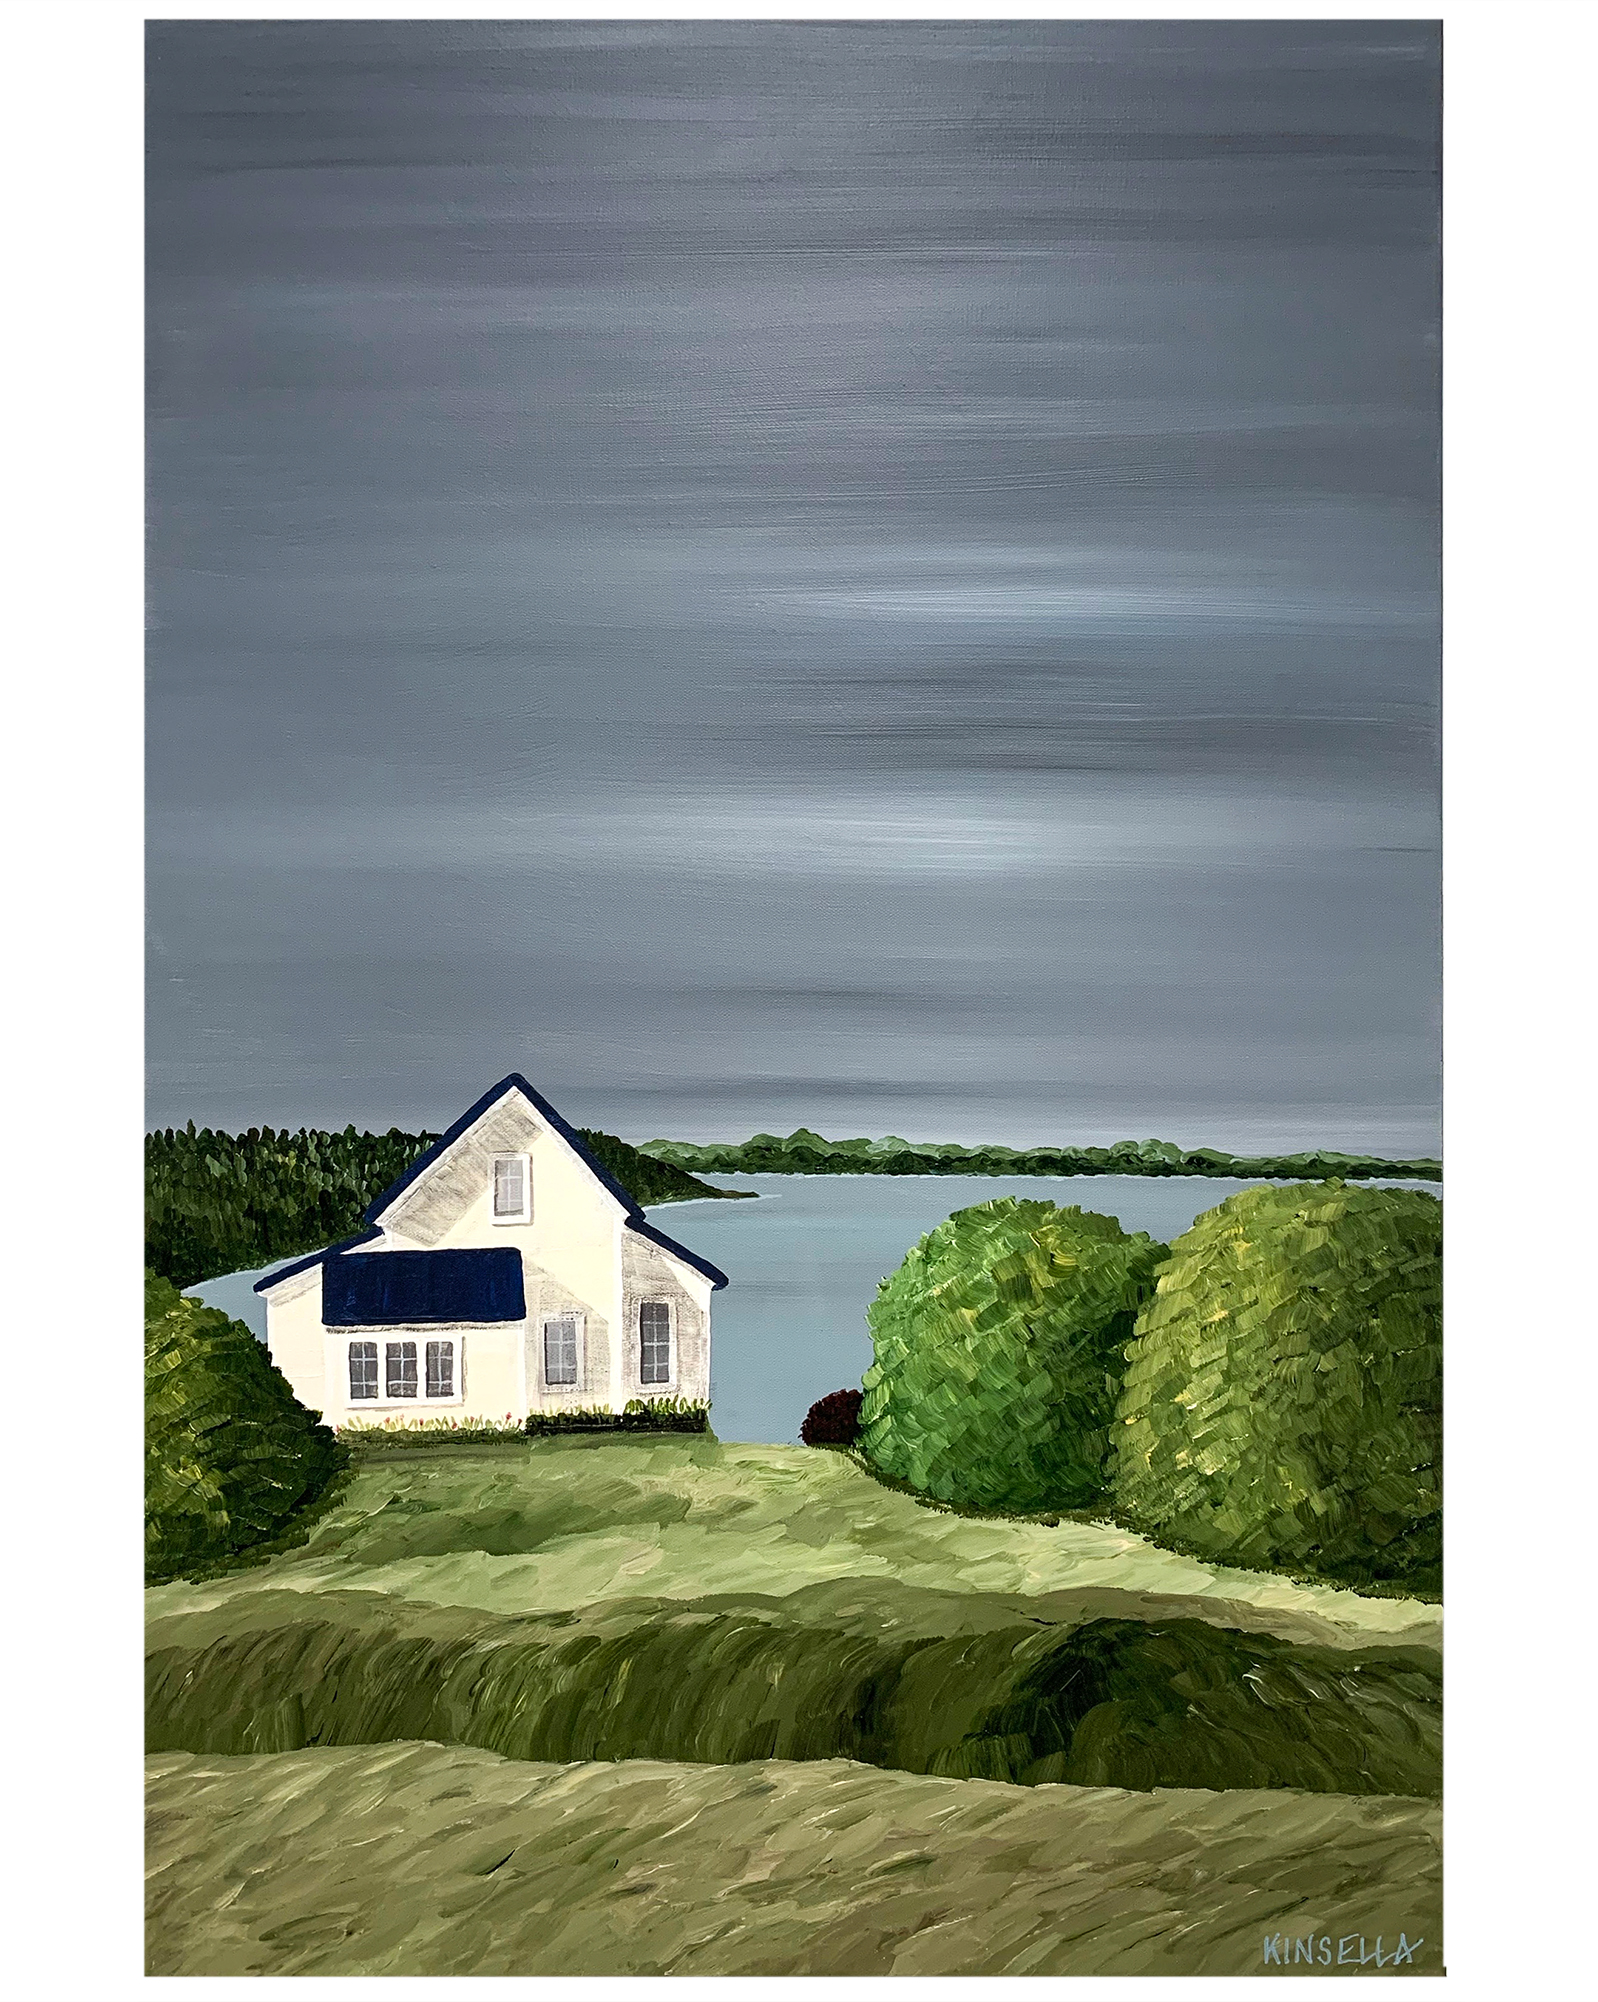 """""""Cottage on Quiet Lake"""" by Susan Kinsella,"""